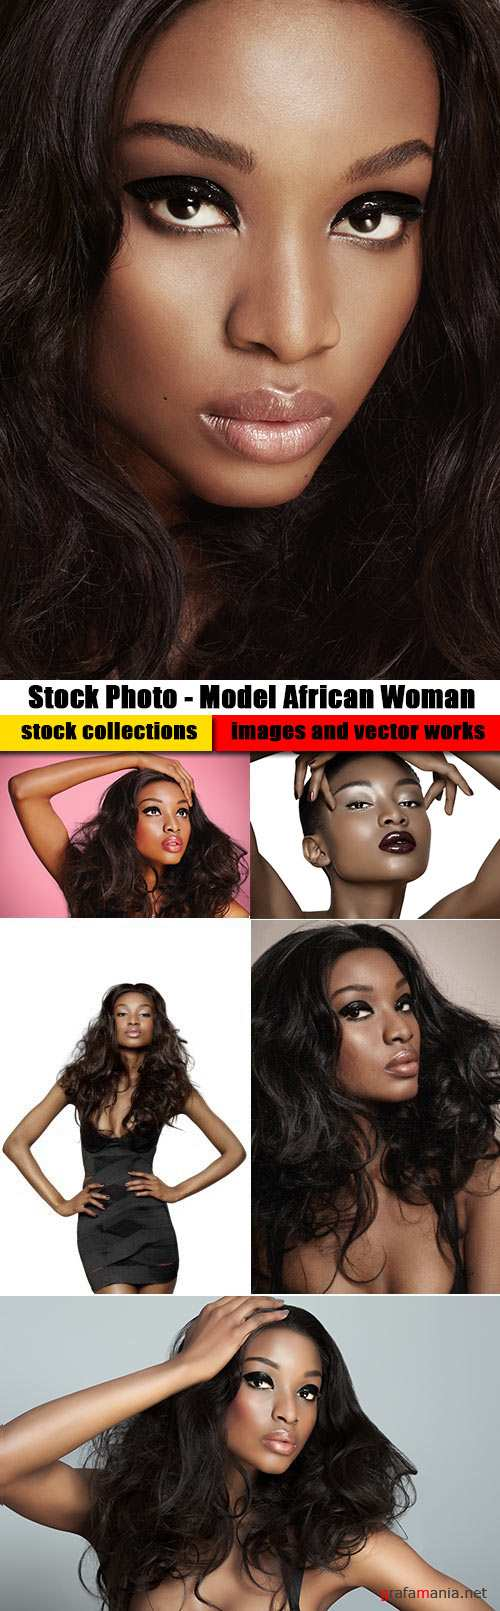 Stock Photo - Model African Woman